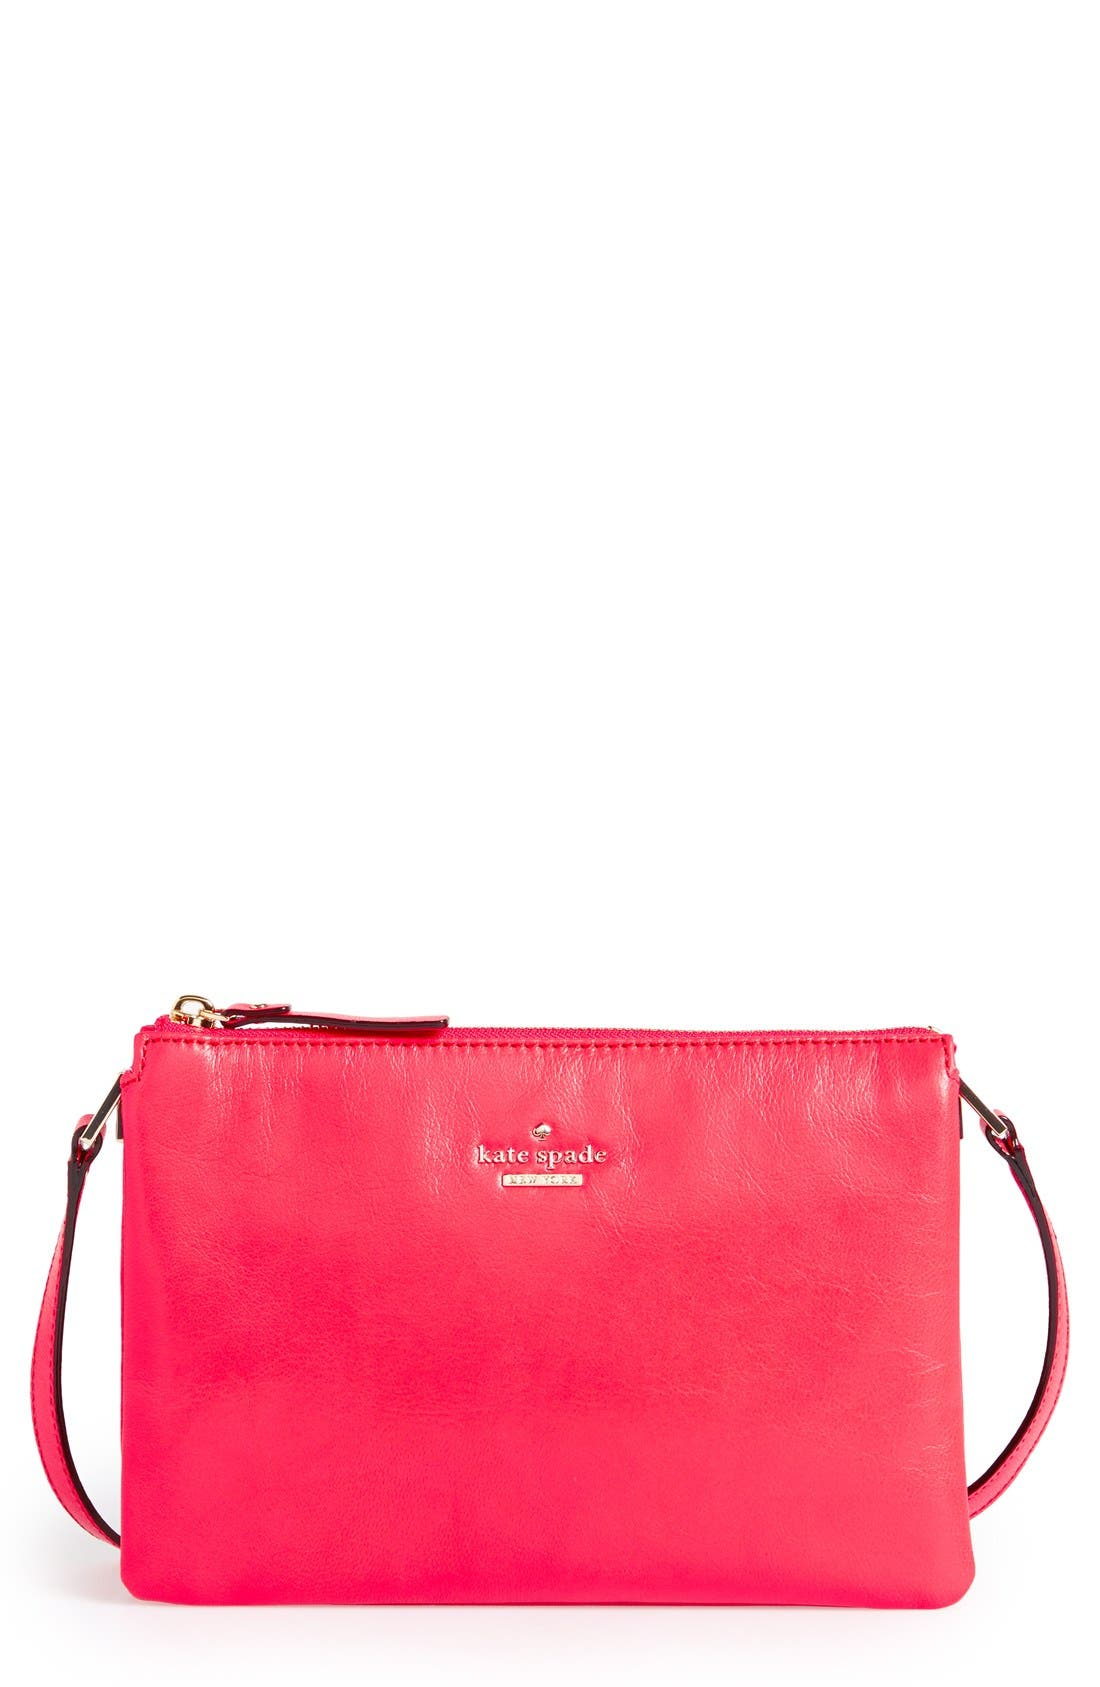 Main Image - kate spade new york 'ivy place - gabriella' leather crossbody bag